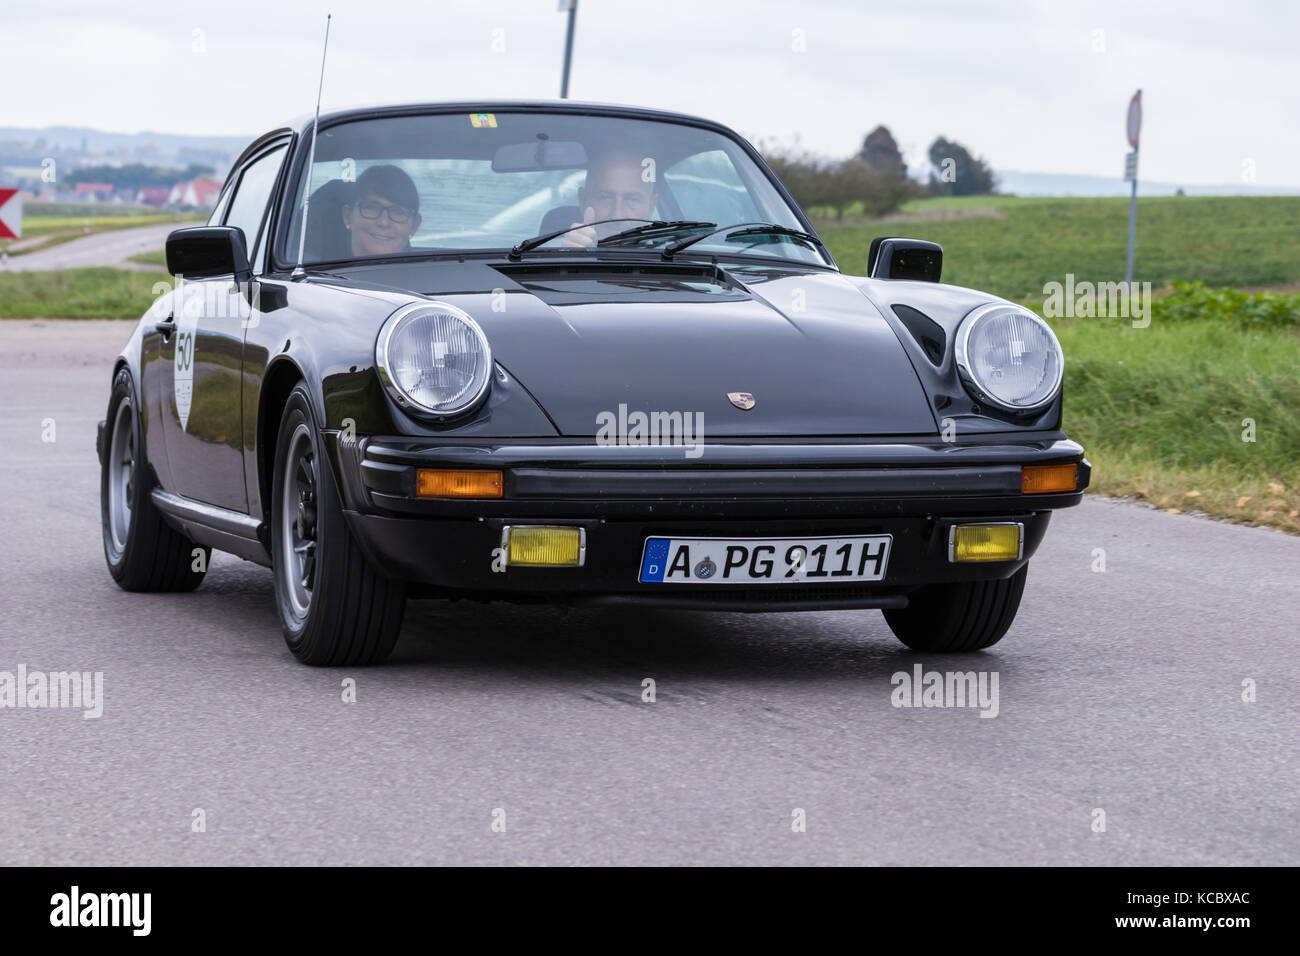 porsche 911 classic stock photos porsche 911 classic stock images alamy. Black Bedroom Furniture Sets. Home Design Ideas